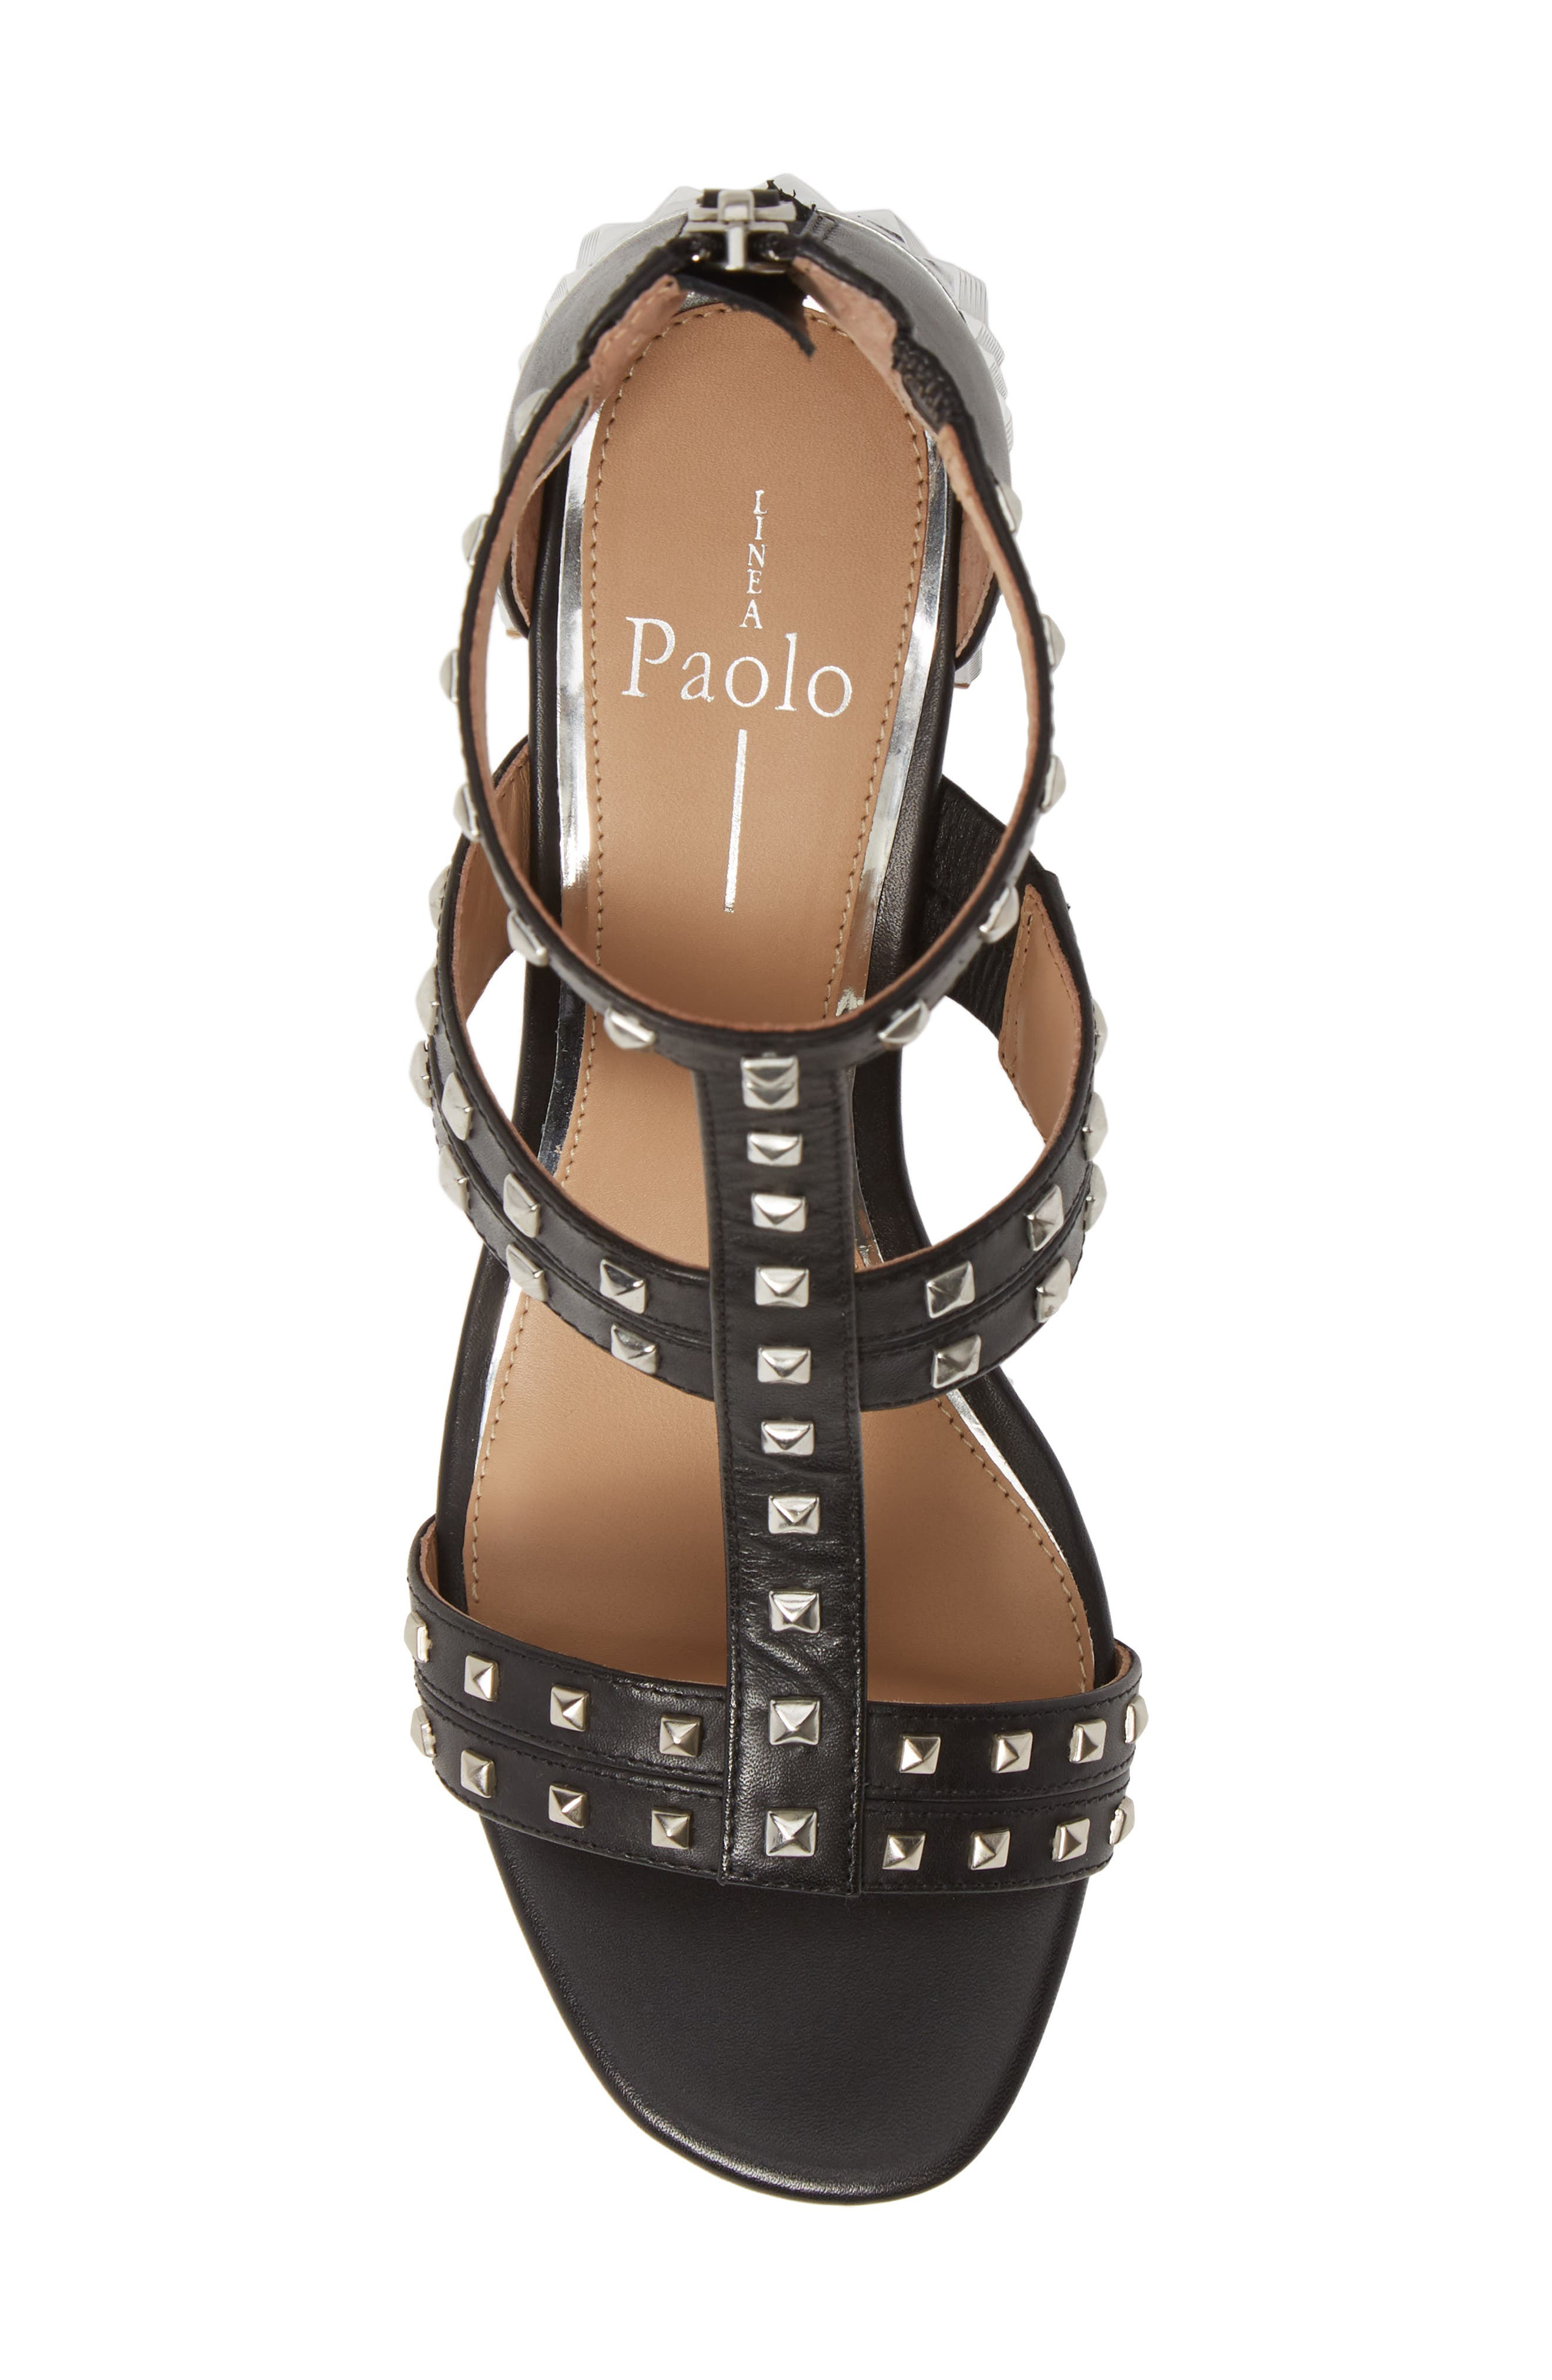 LINEA PAOLO, Harley Sandal, Alternate thumbnail 5, color, BLACK LEATHER